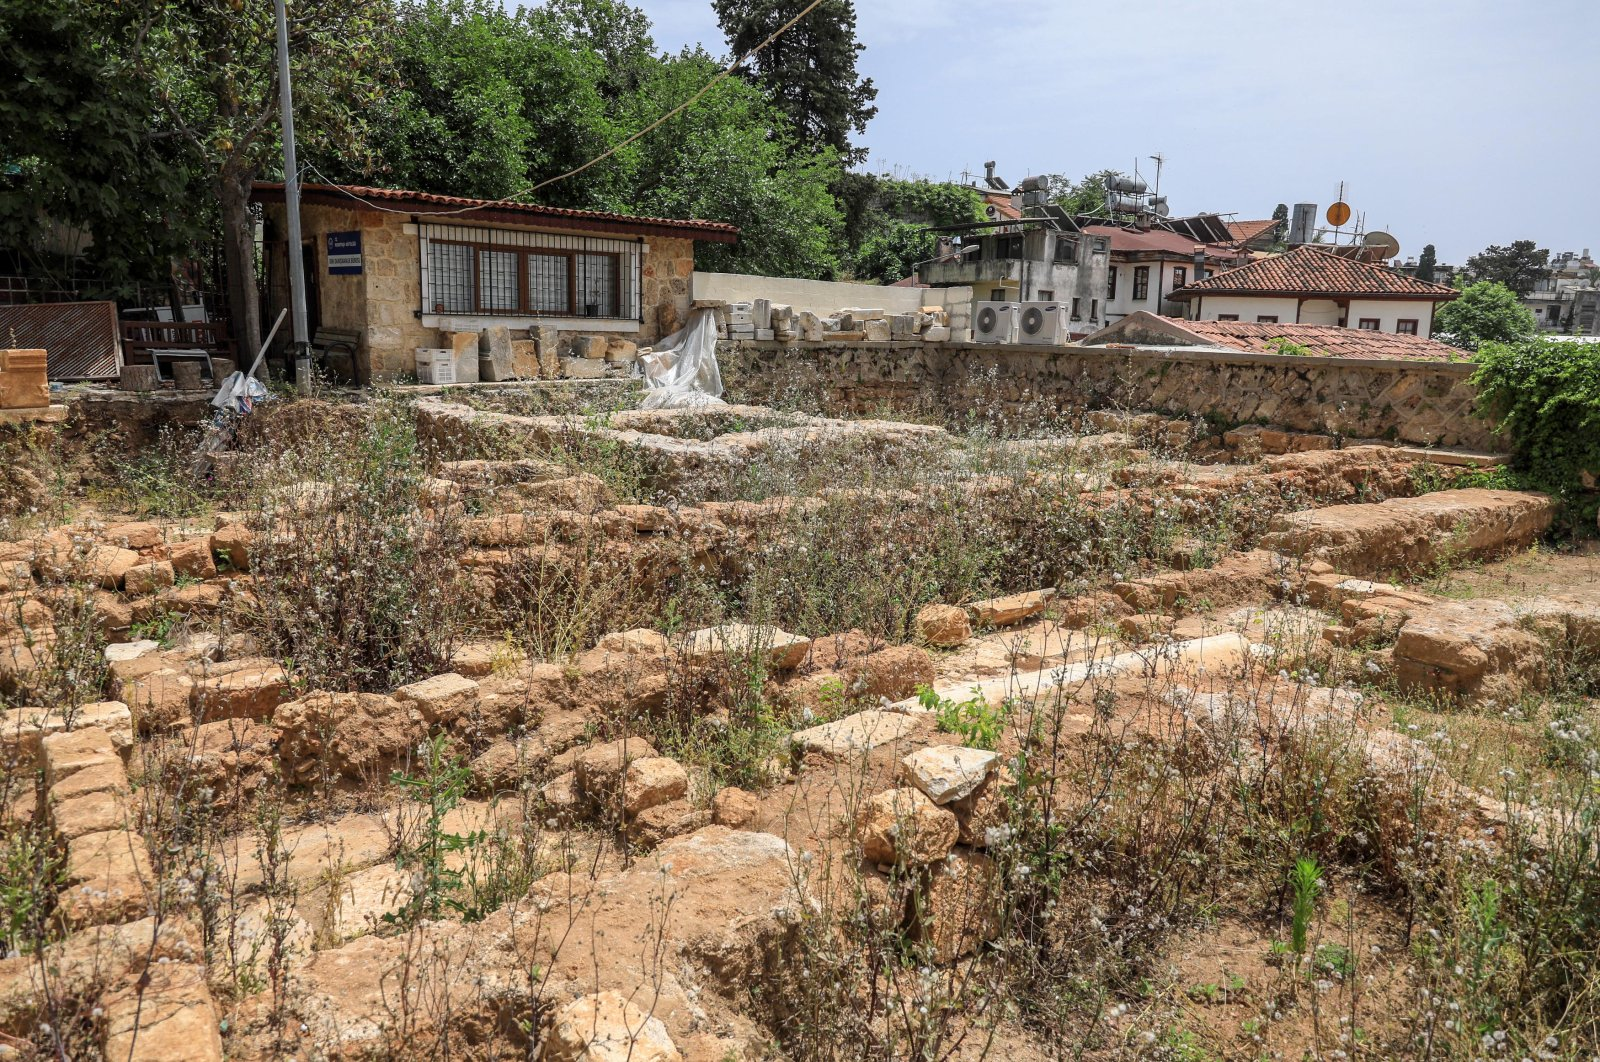 The graves were found during excavations to unearth the madrasah gate at Yivli Minare Mosque, Antalya, Turkey. (DHA Photo)